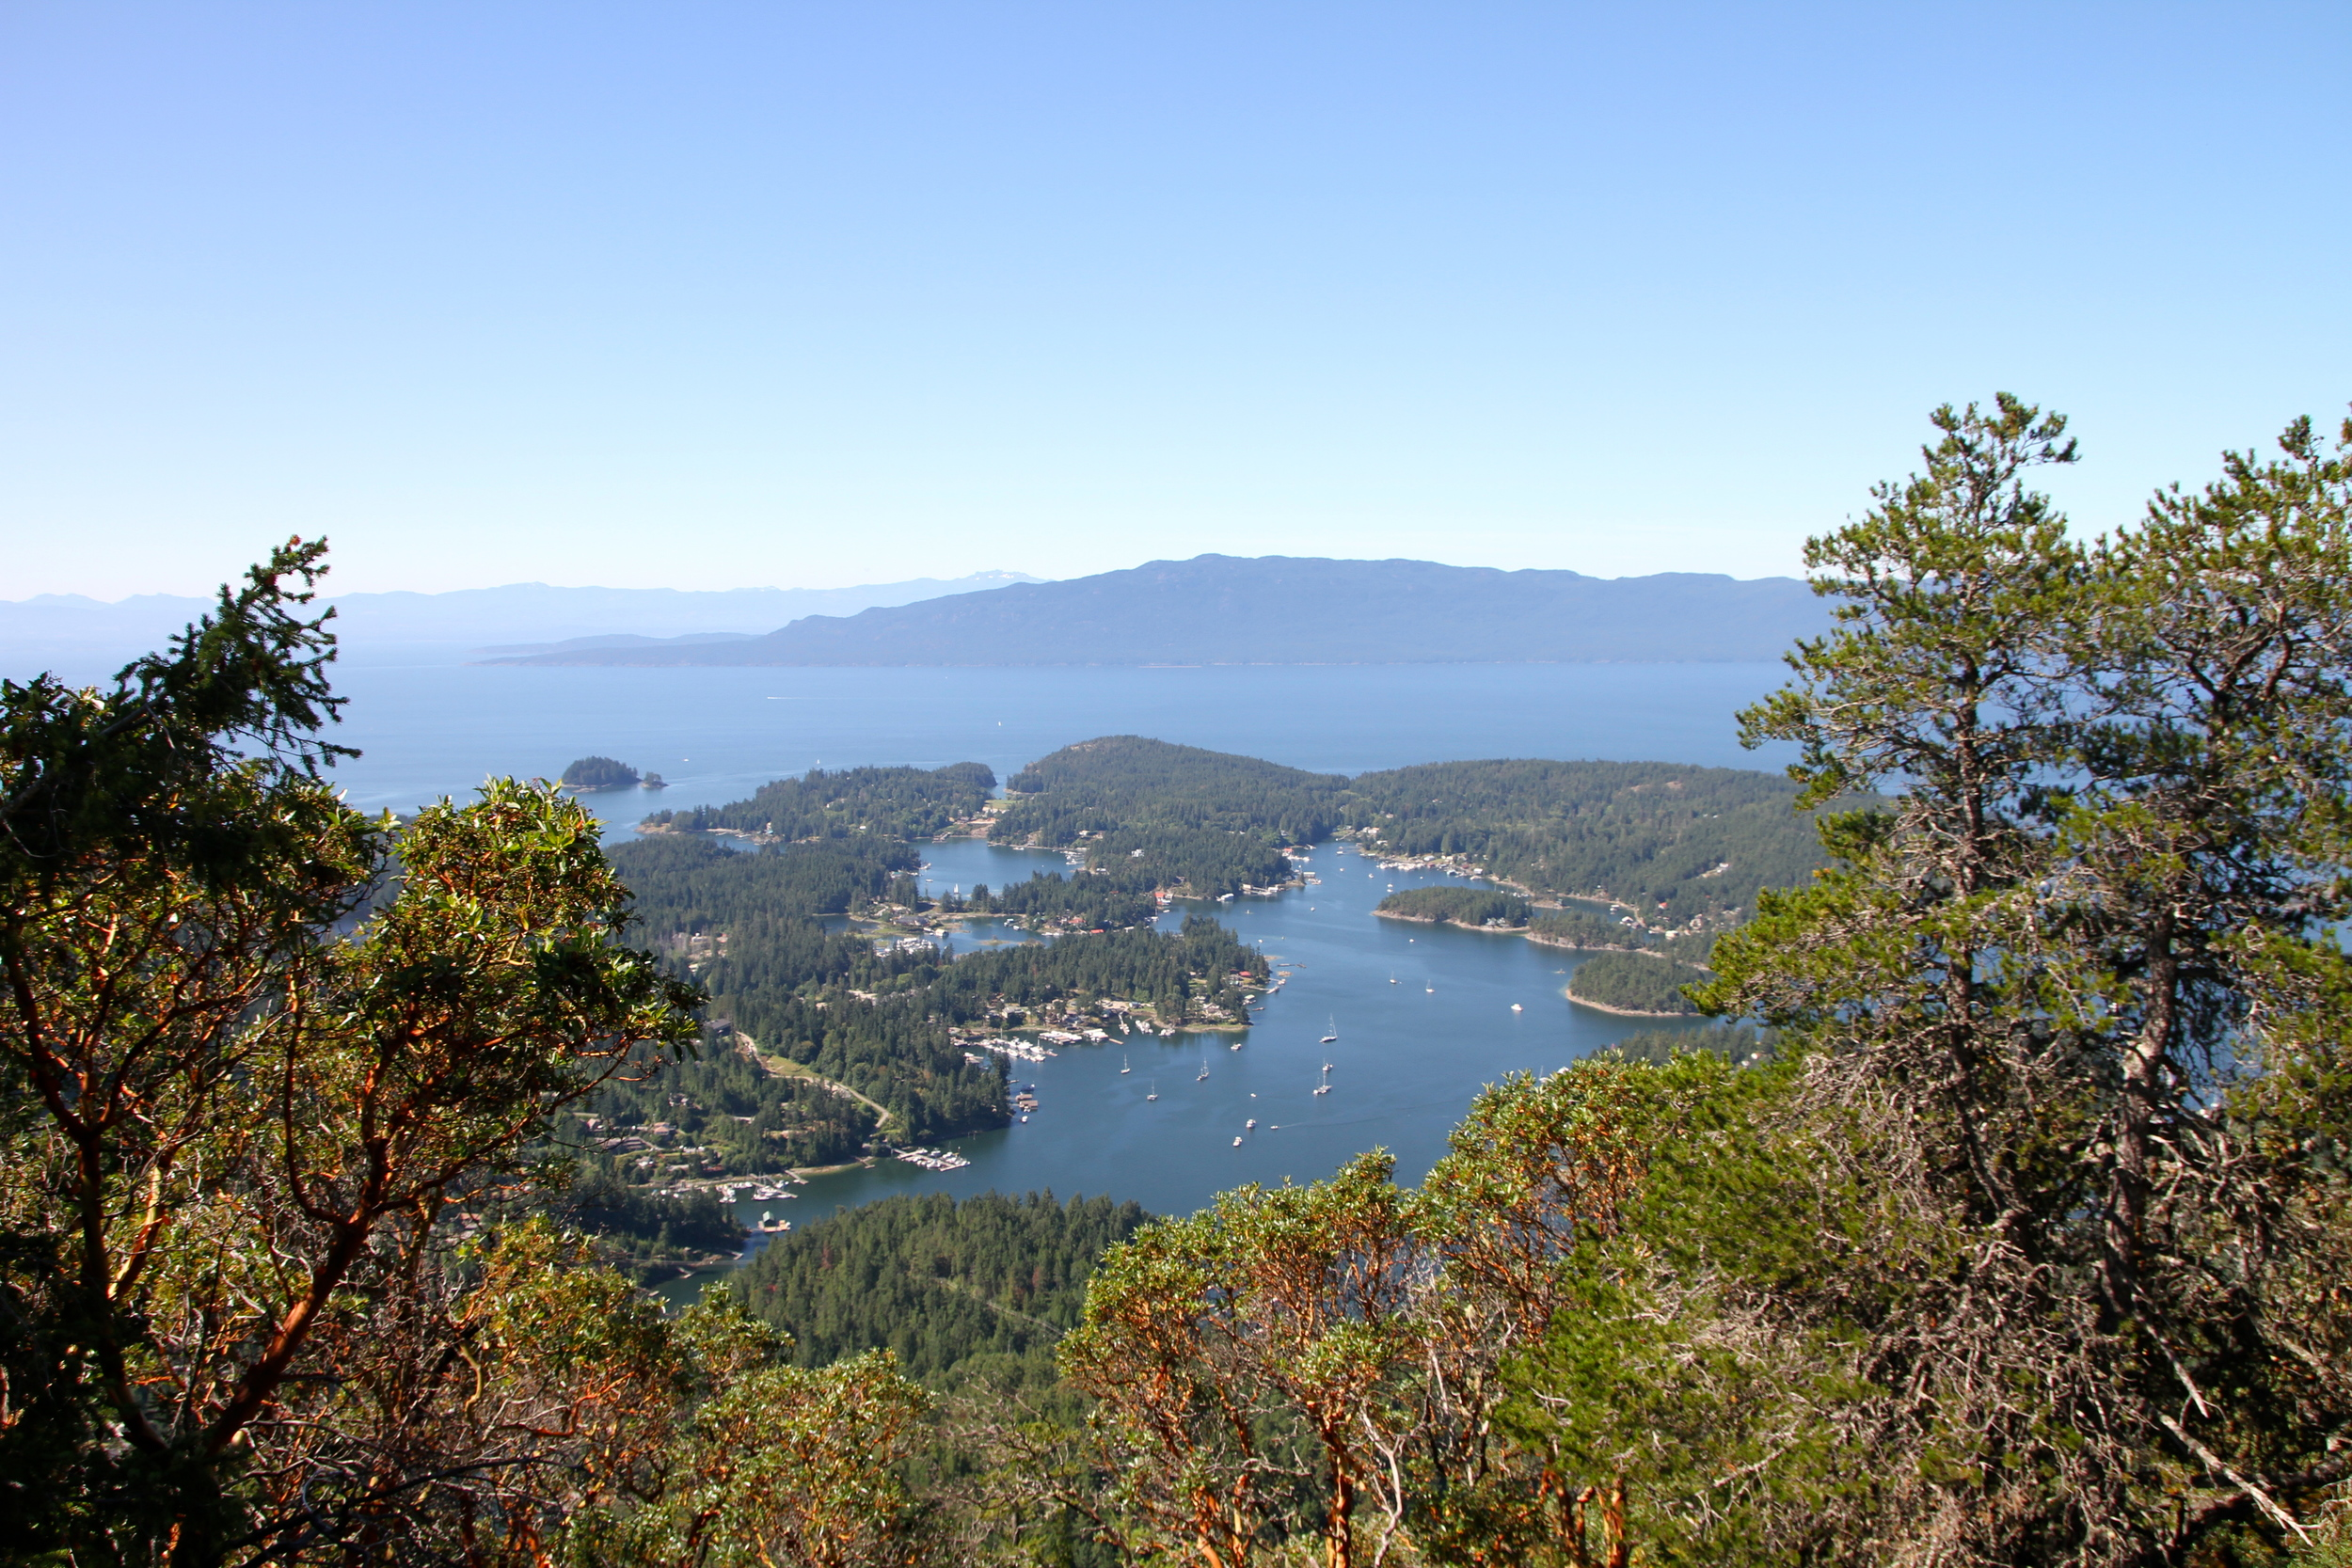 View from the top of Mount Daniel, Sunshine Coast, BC, Canada.